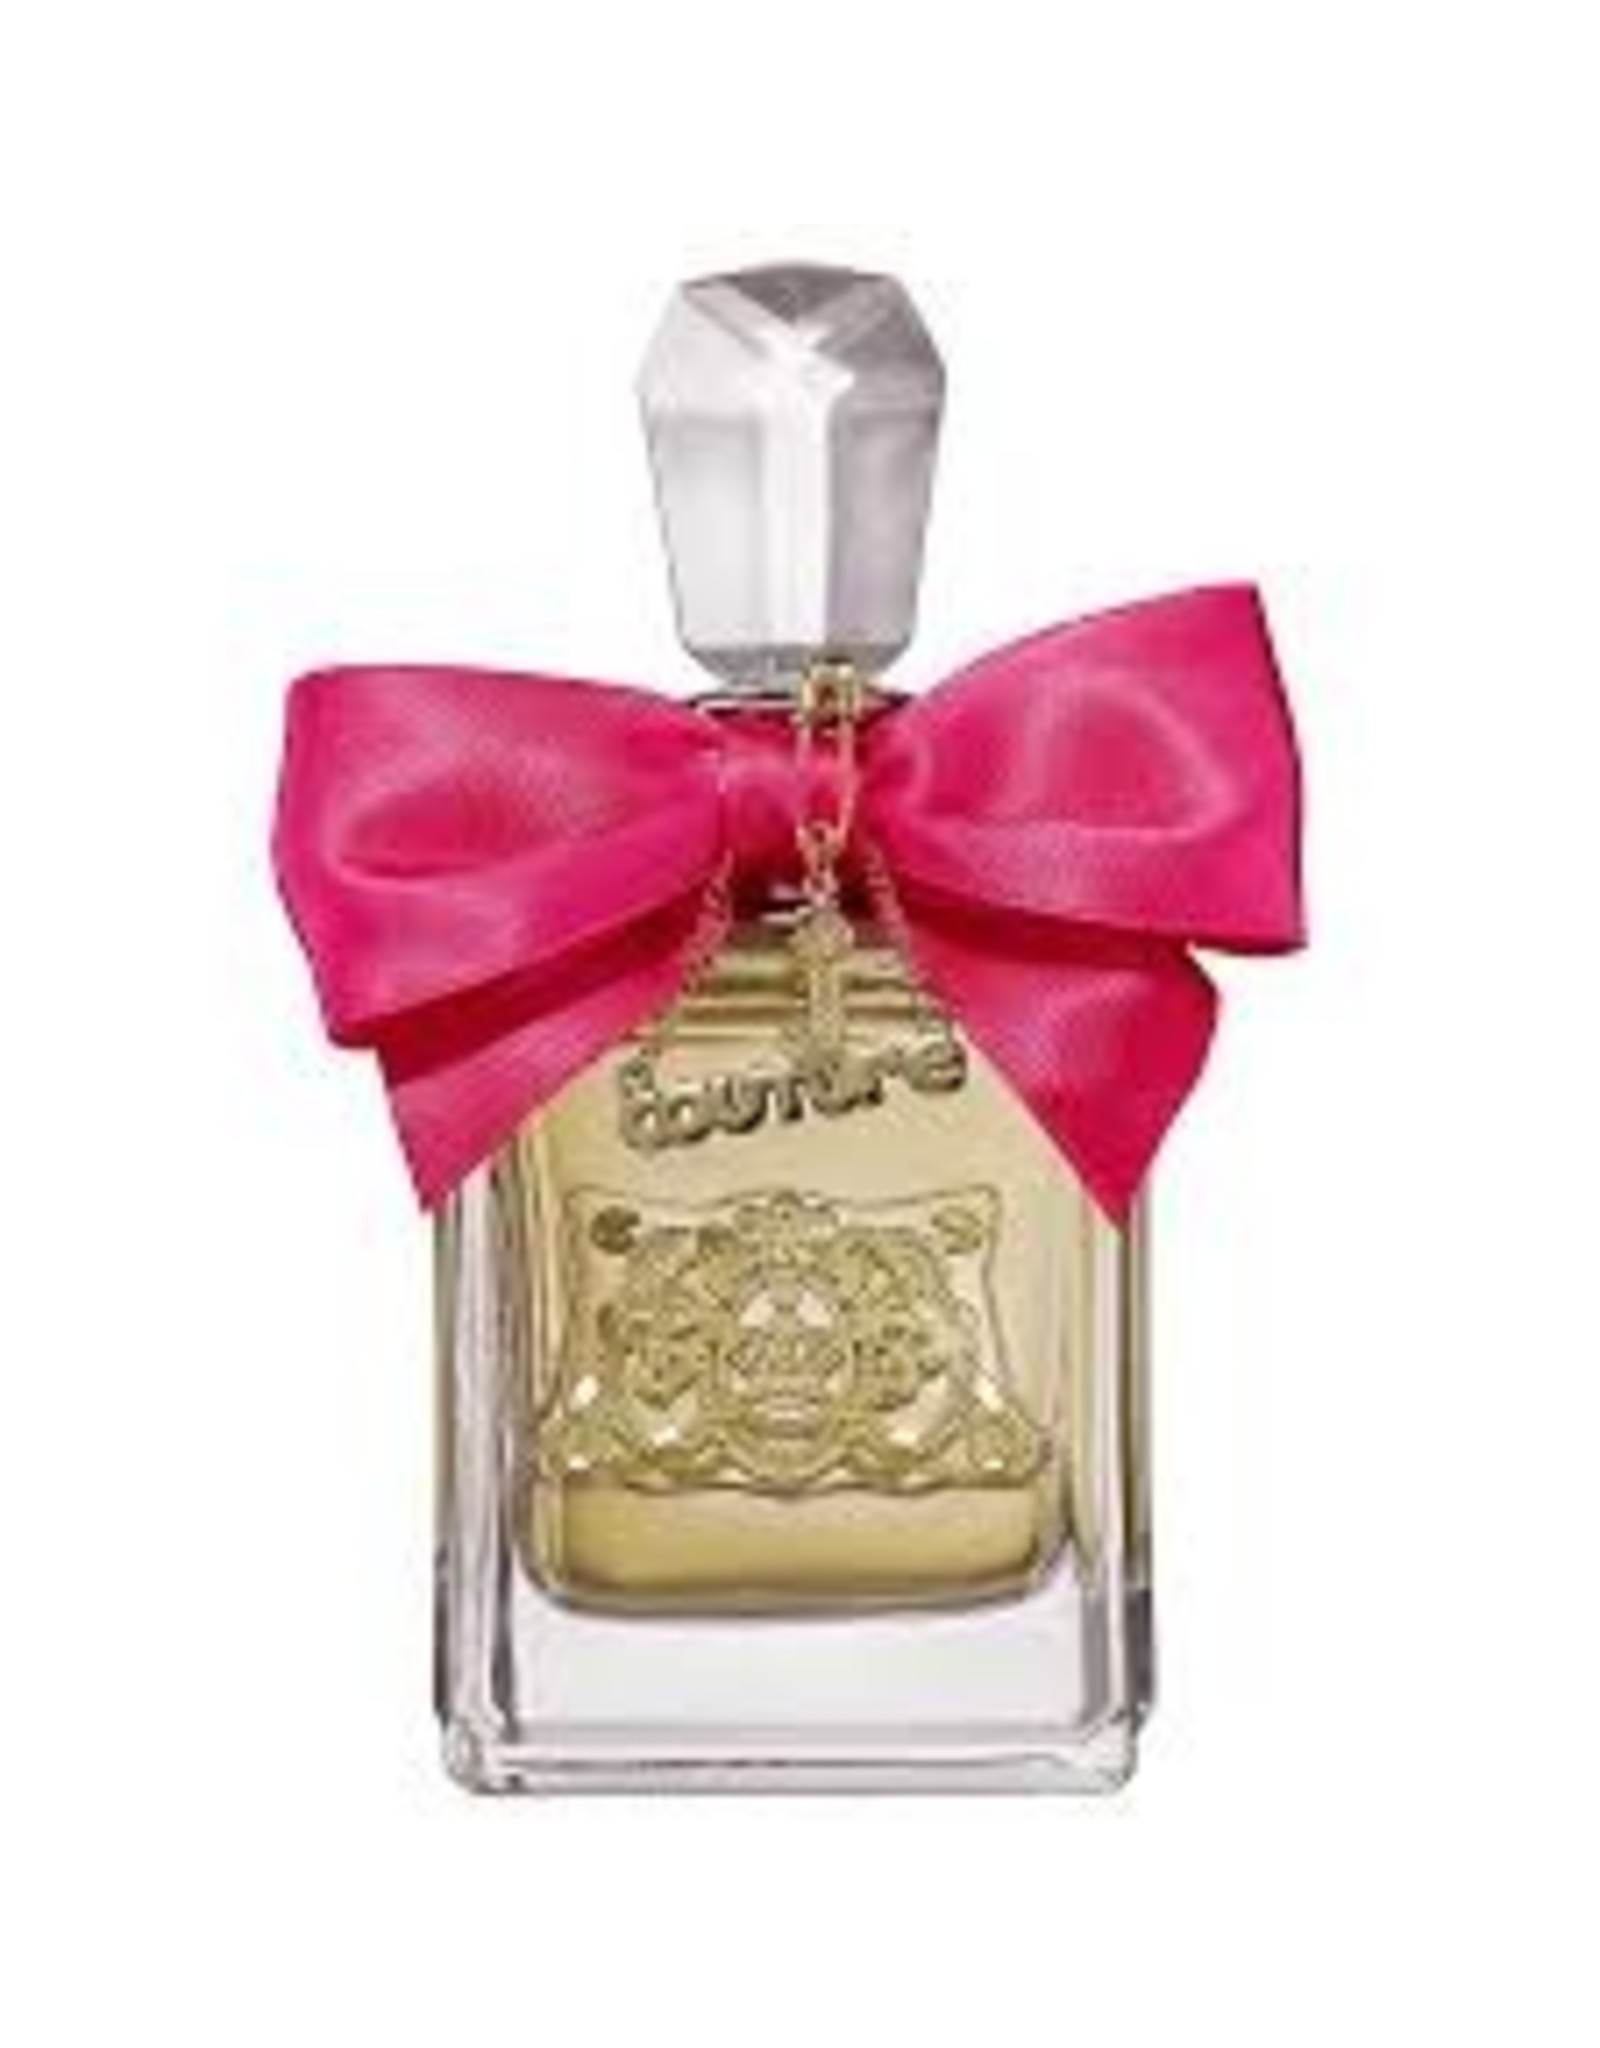 JUICY COUTURE JUICY COUTURE VIVA LA JUICY